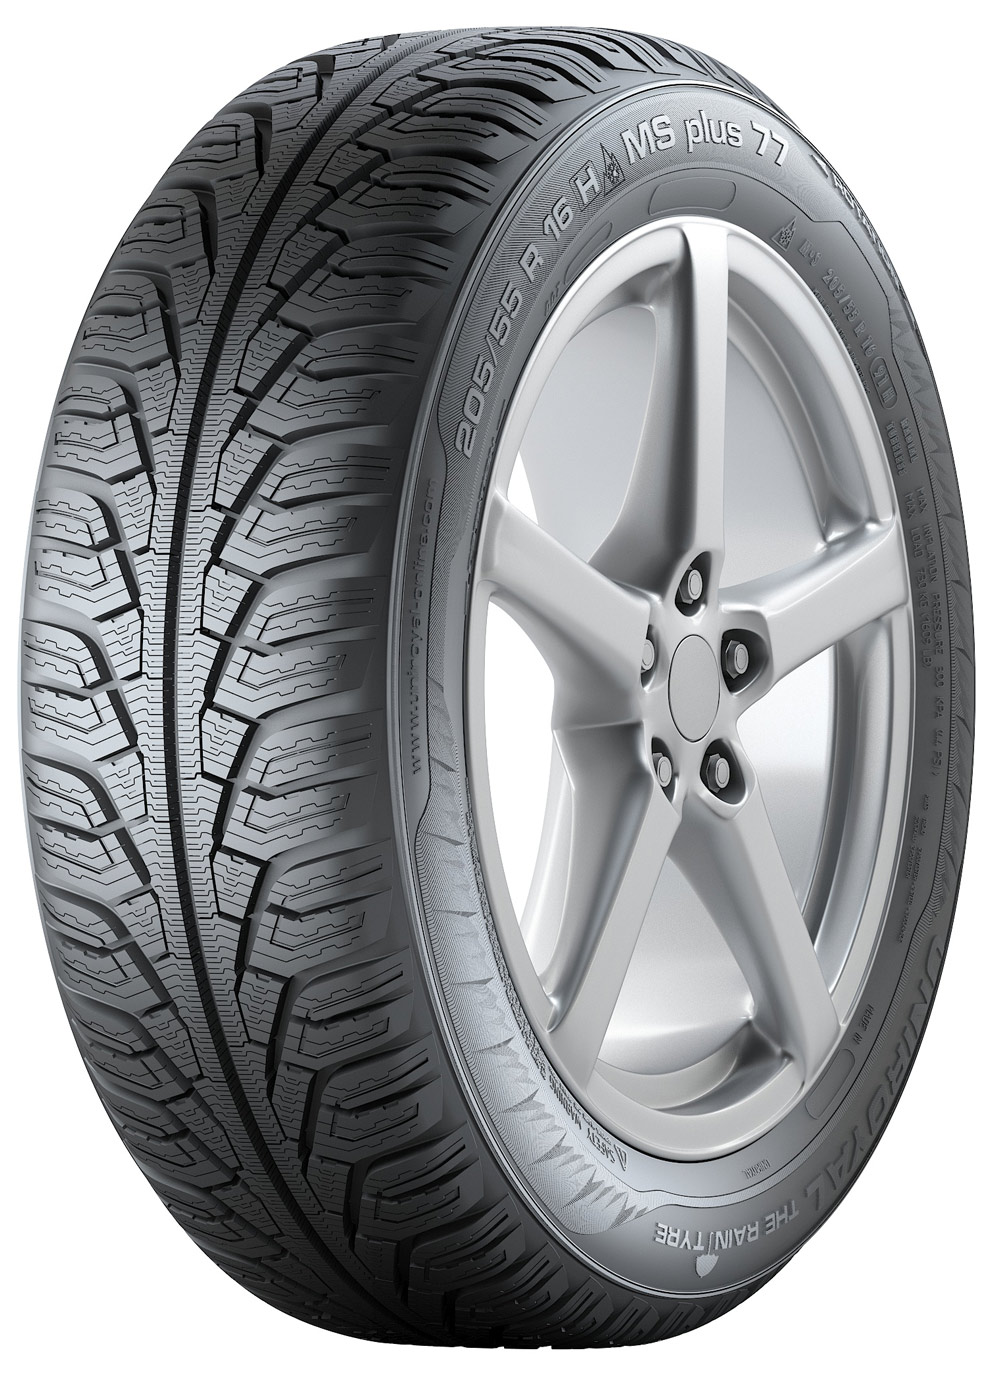 UNIROYAL MS PLUS 77 225/55 R 16